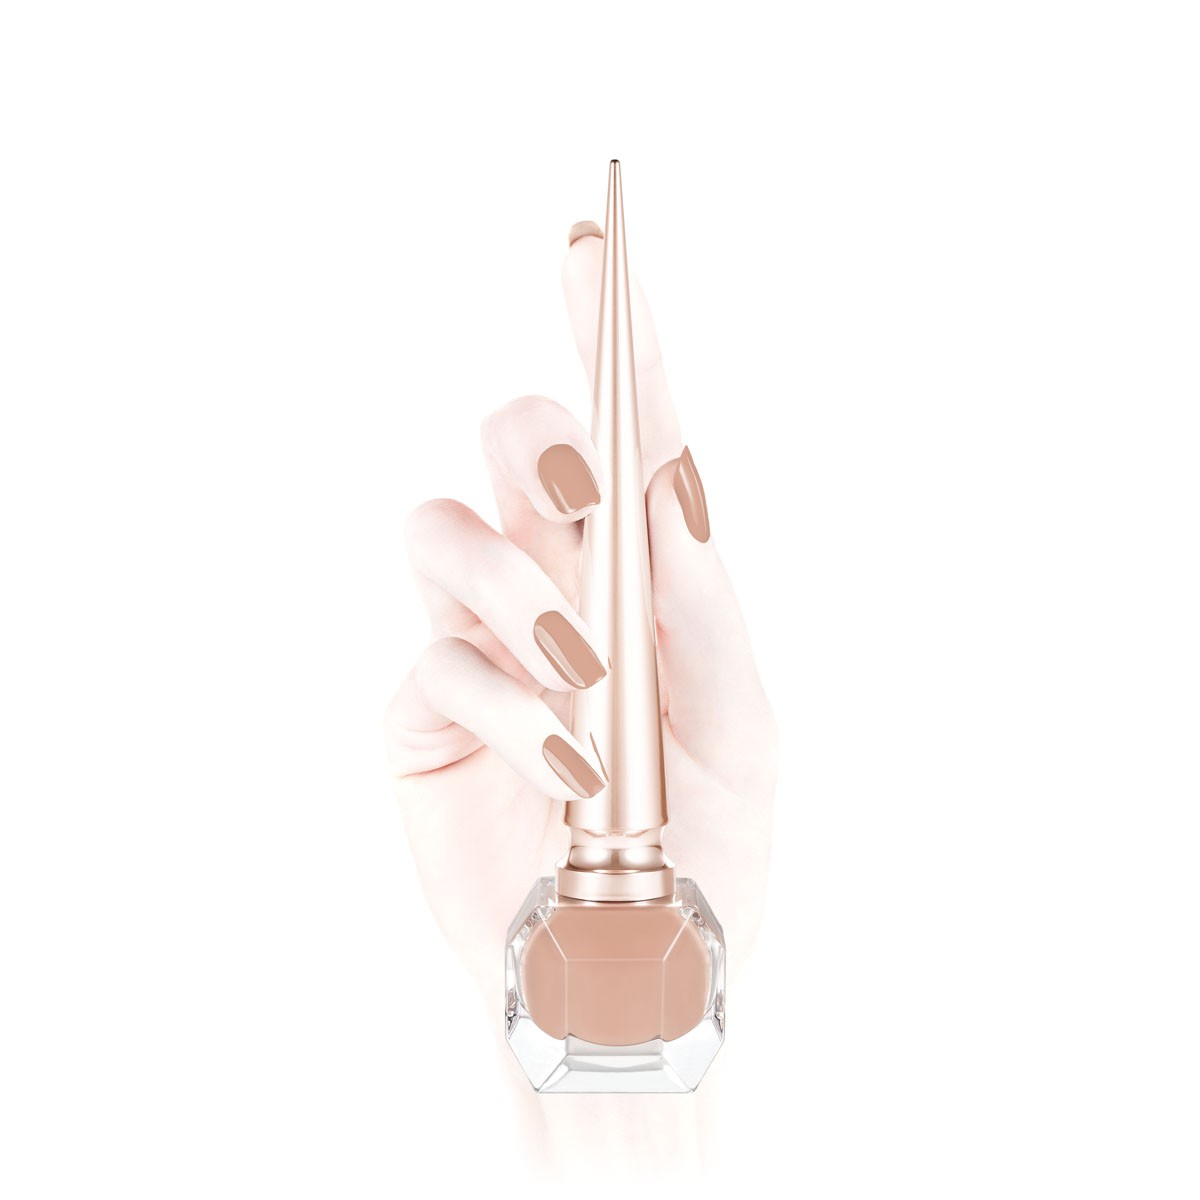 Beauty - Tutulle - Christian Louboutin